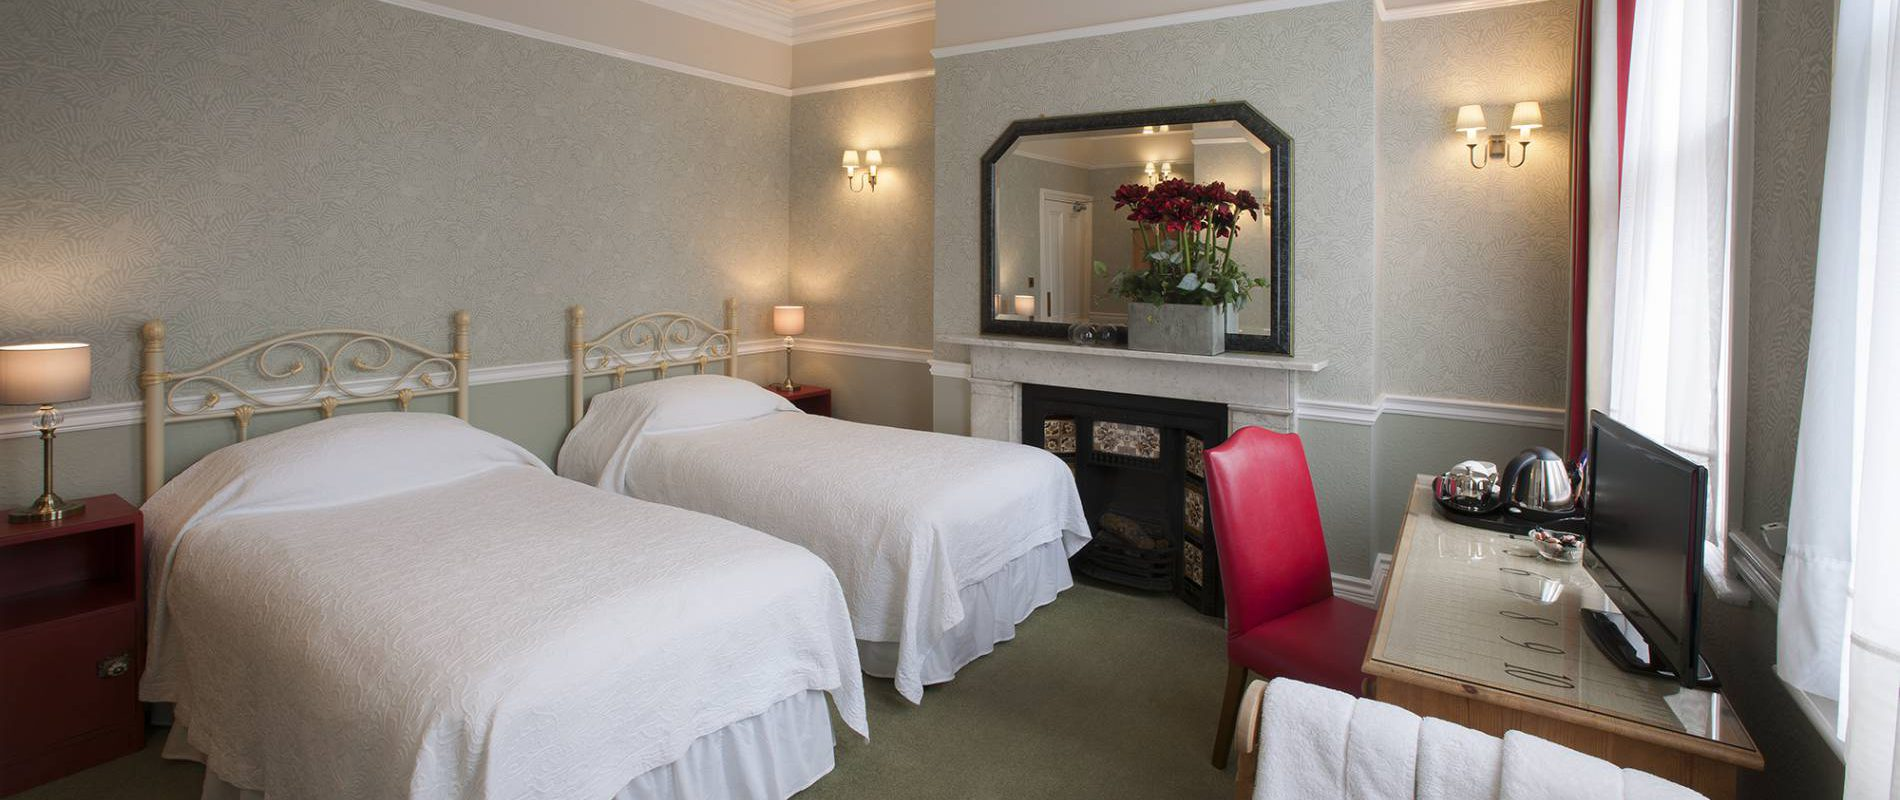 Yorke Lodge Bed & Breakfast Canterbury Kent twin room